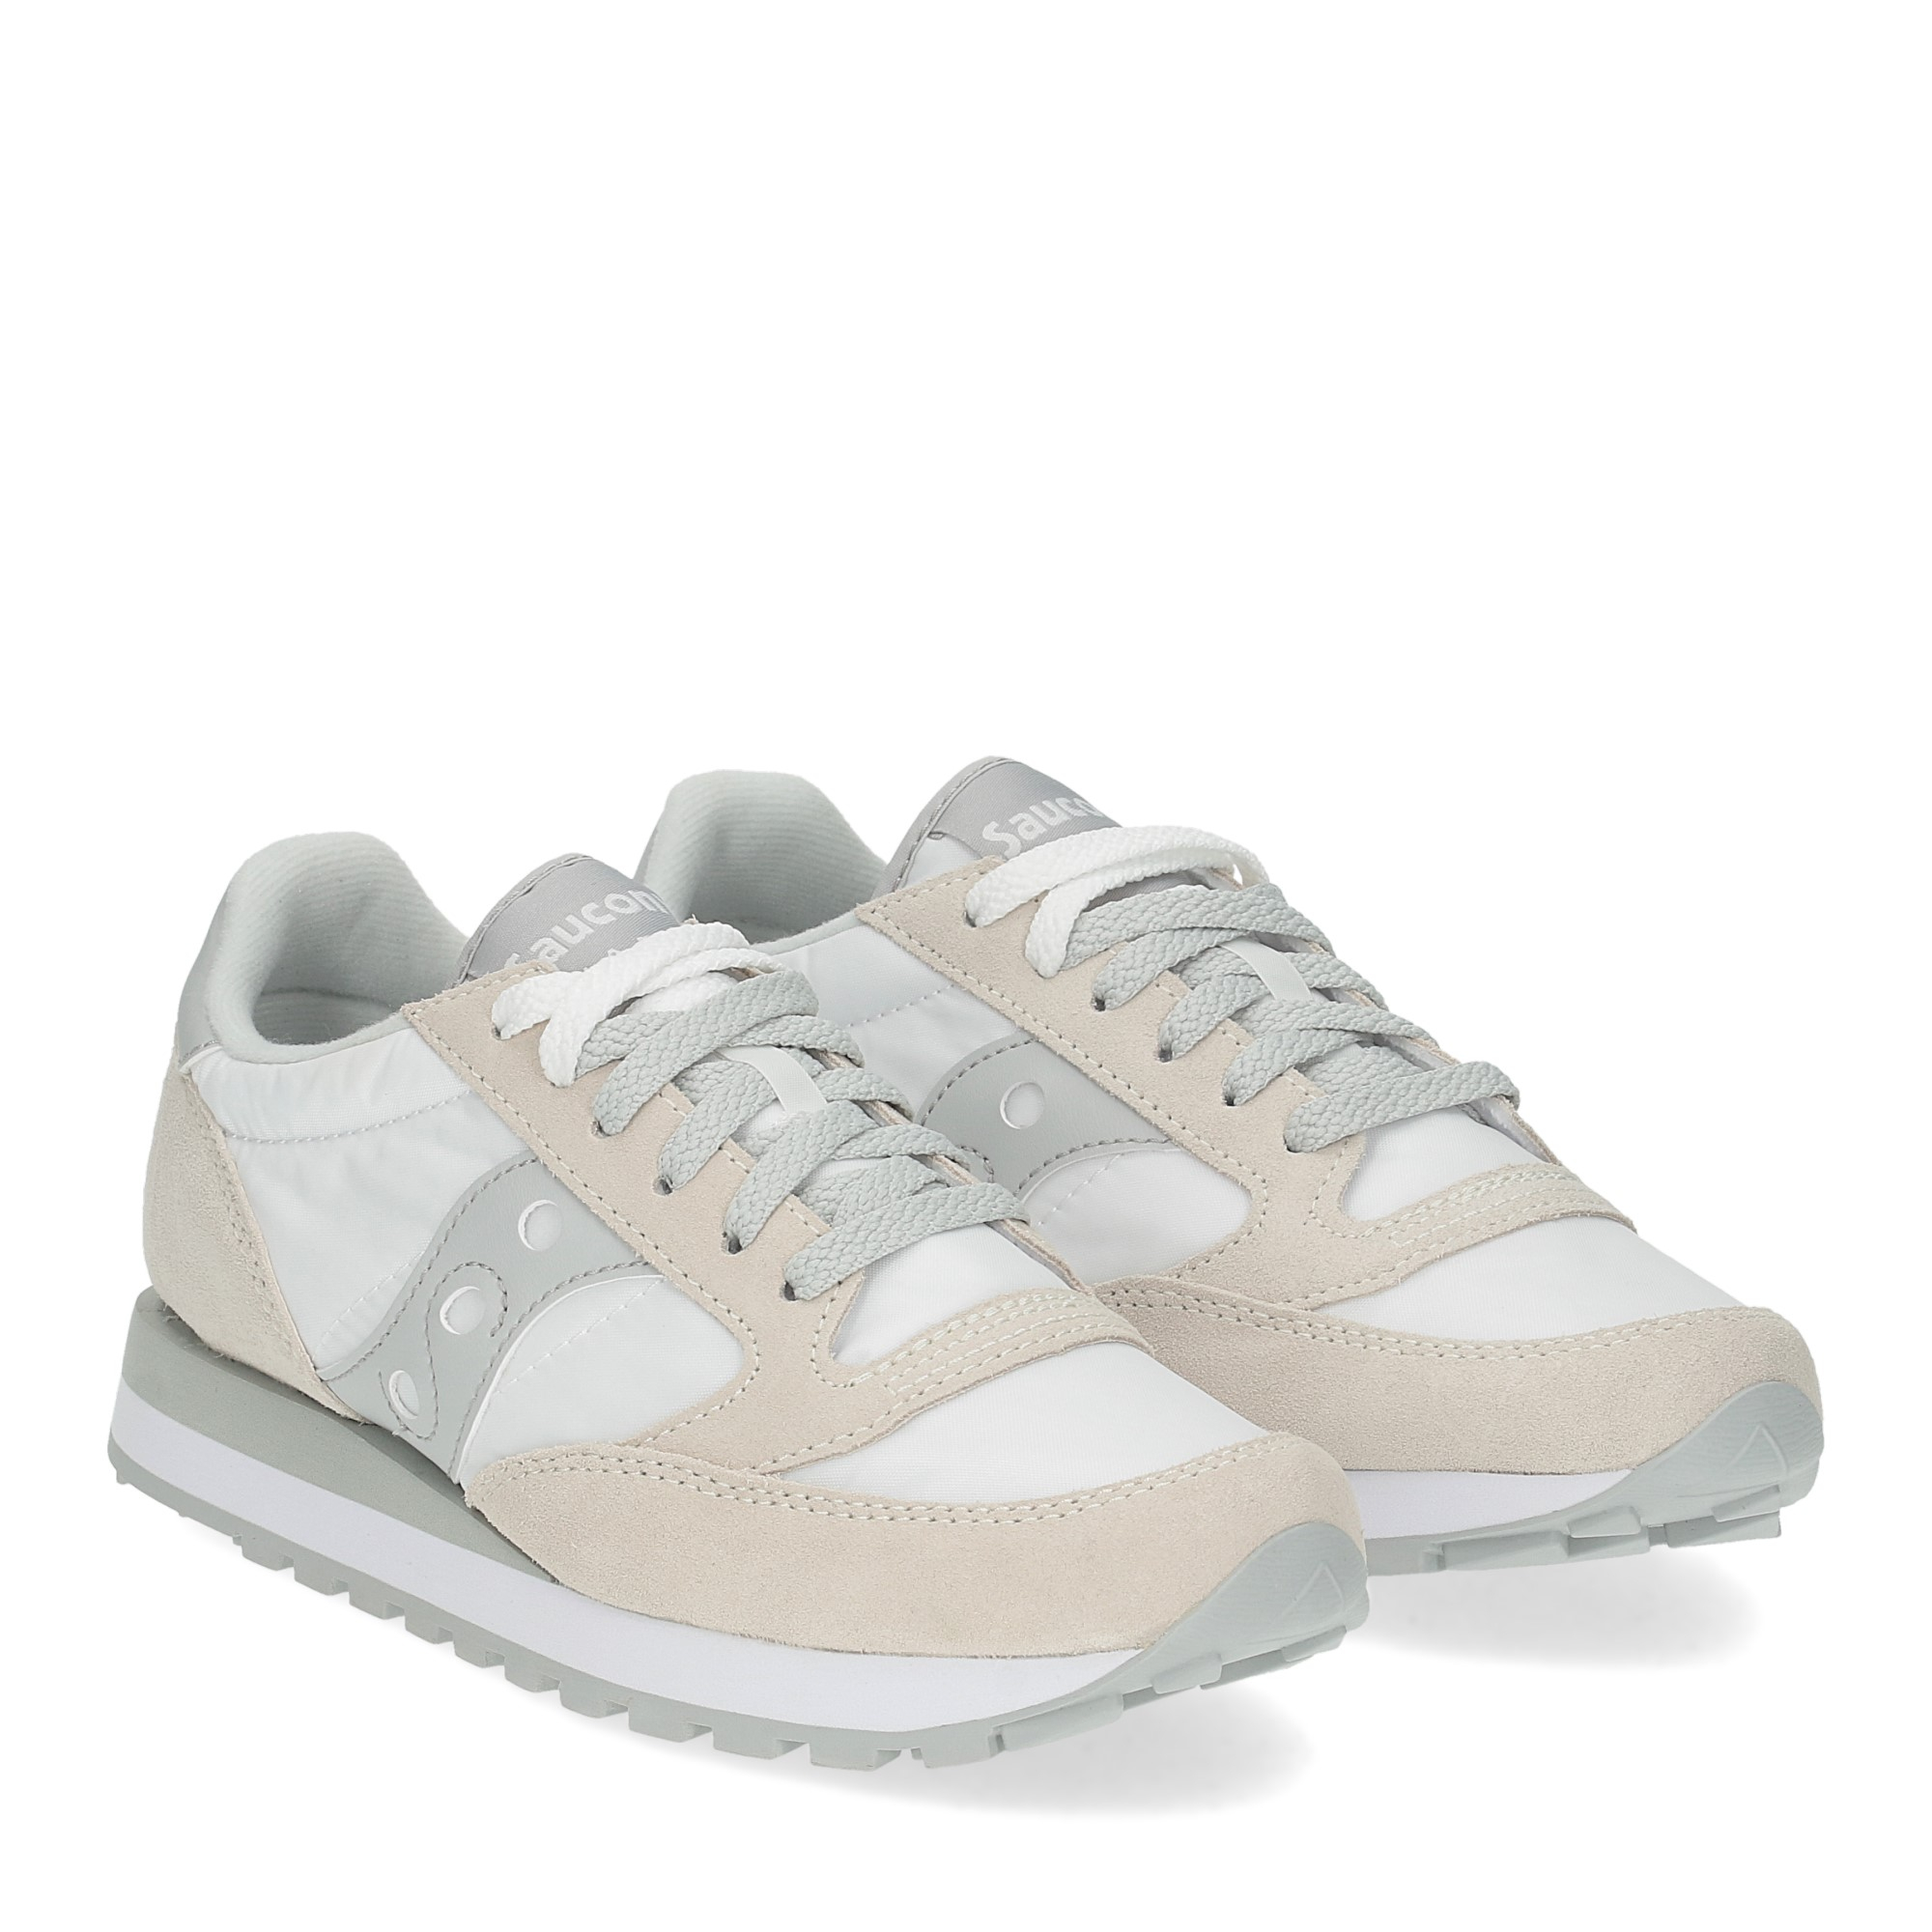 Saucony Jazz Original low white grey